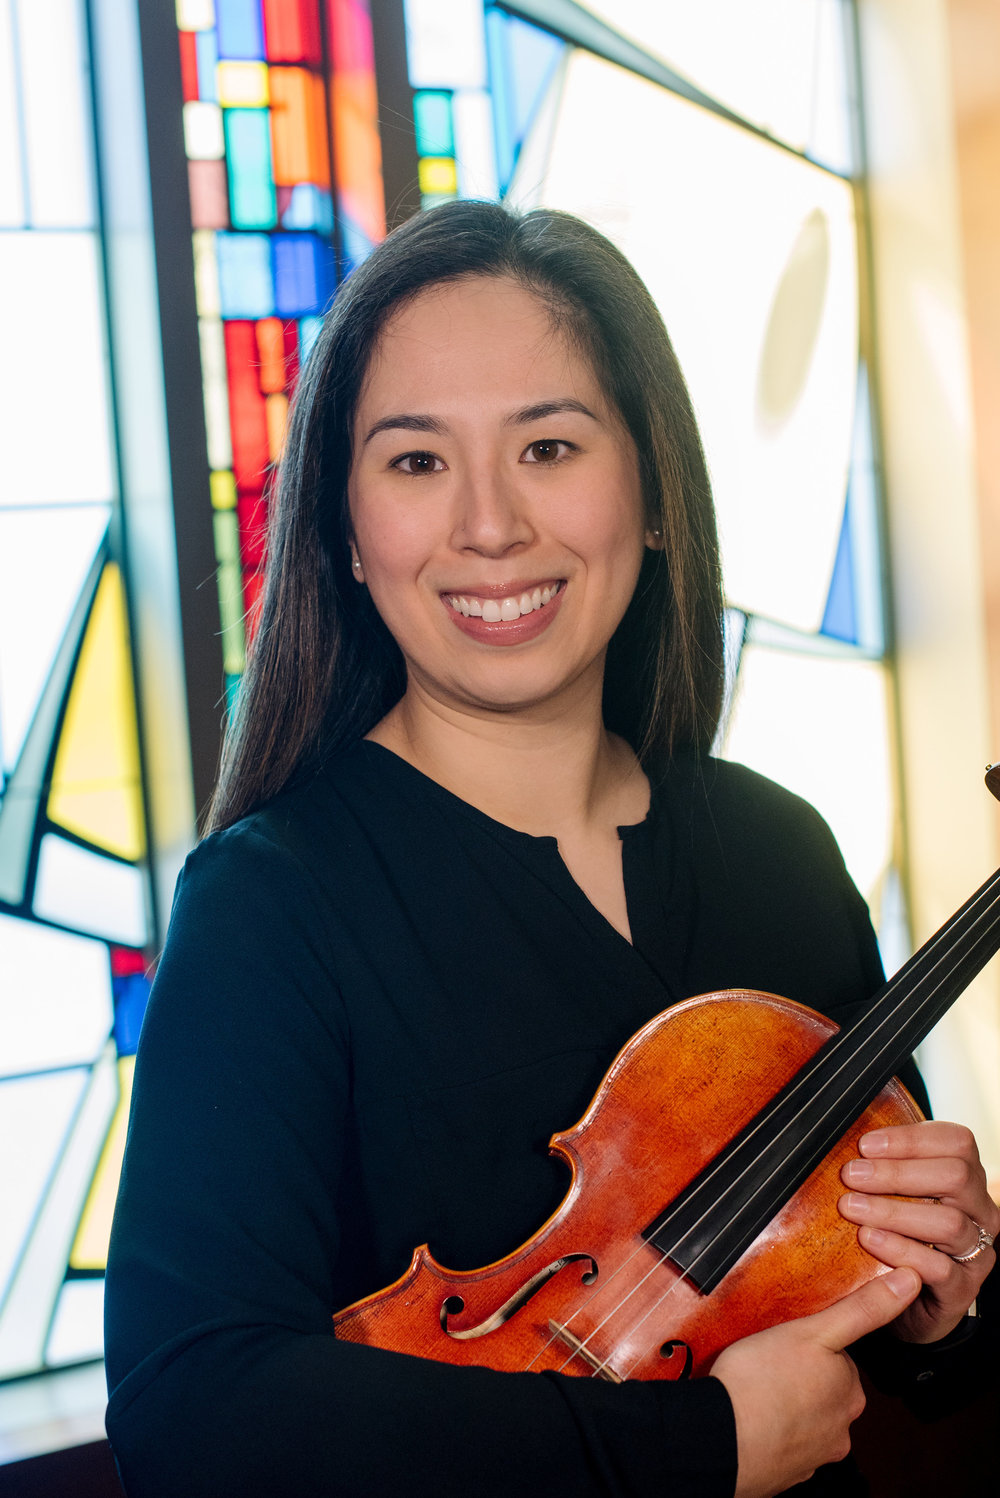 - BECKY SolomanVIOLIN/violaBecky is a graduate of Wright State University and has taught orchestra in public schools since 2008. She has performed with Turtle Island String Quartet and has collaborated with L.A. based rock string group, The Section Quartet, for multiple performances. Becky completed her Master of Education degree in 2014. Becky plays weekly at Fairhaven Church and is a past member of the WSU Orchestra and the Lebanon Symphony Orchestra.